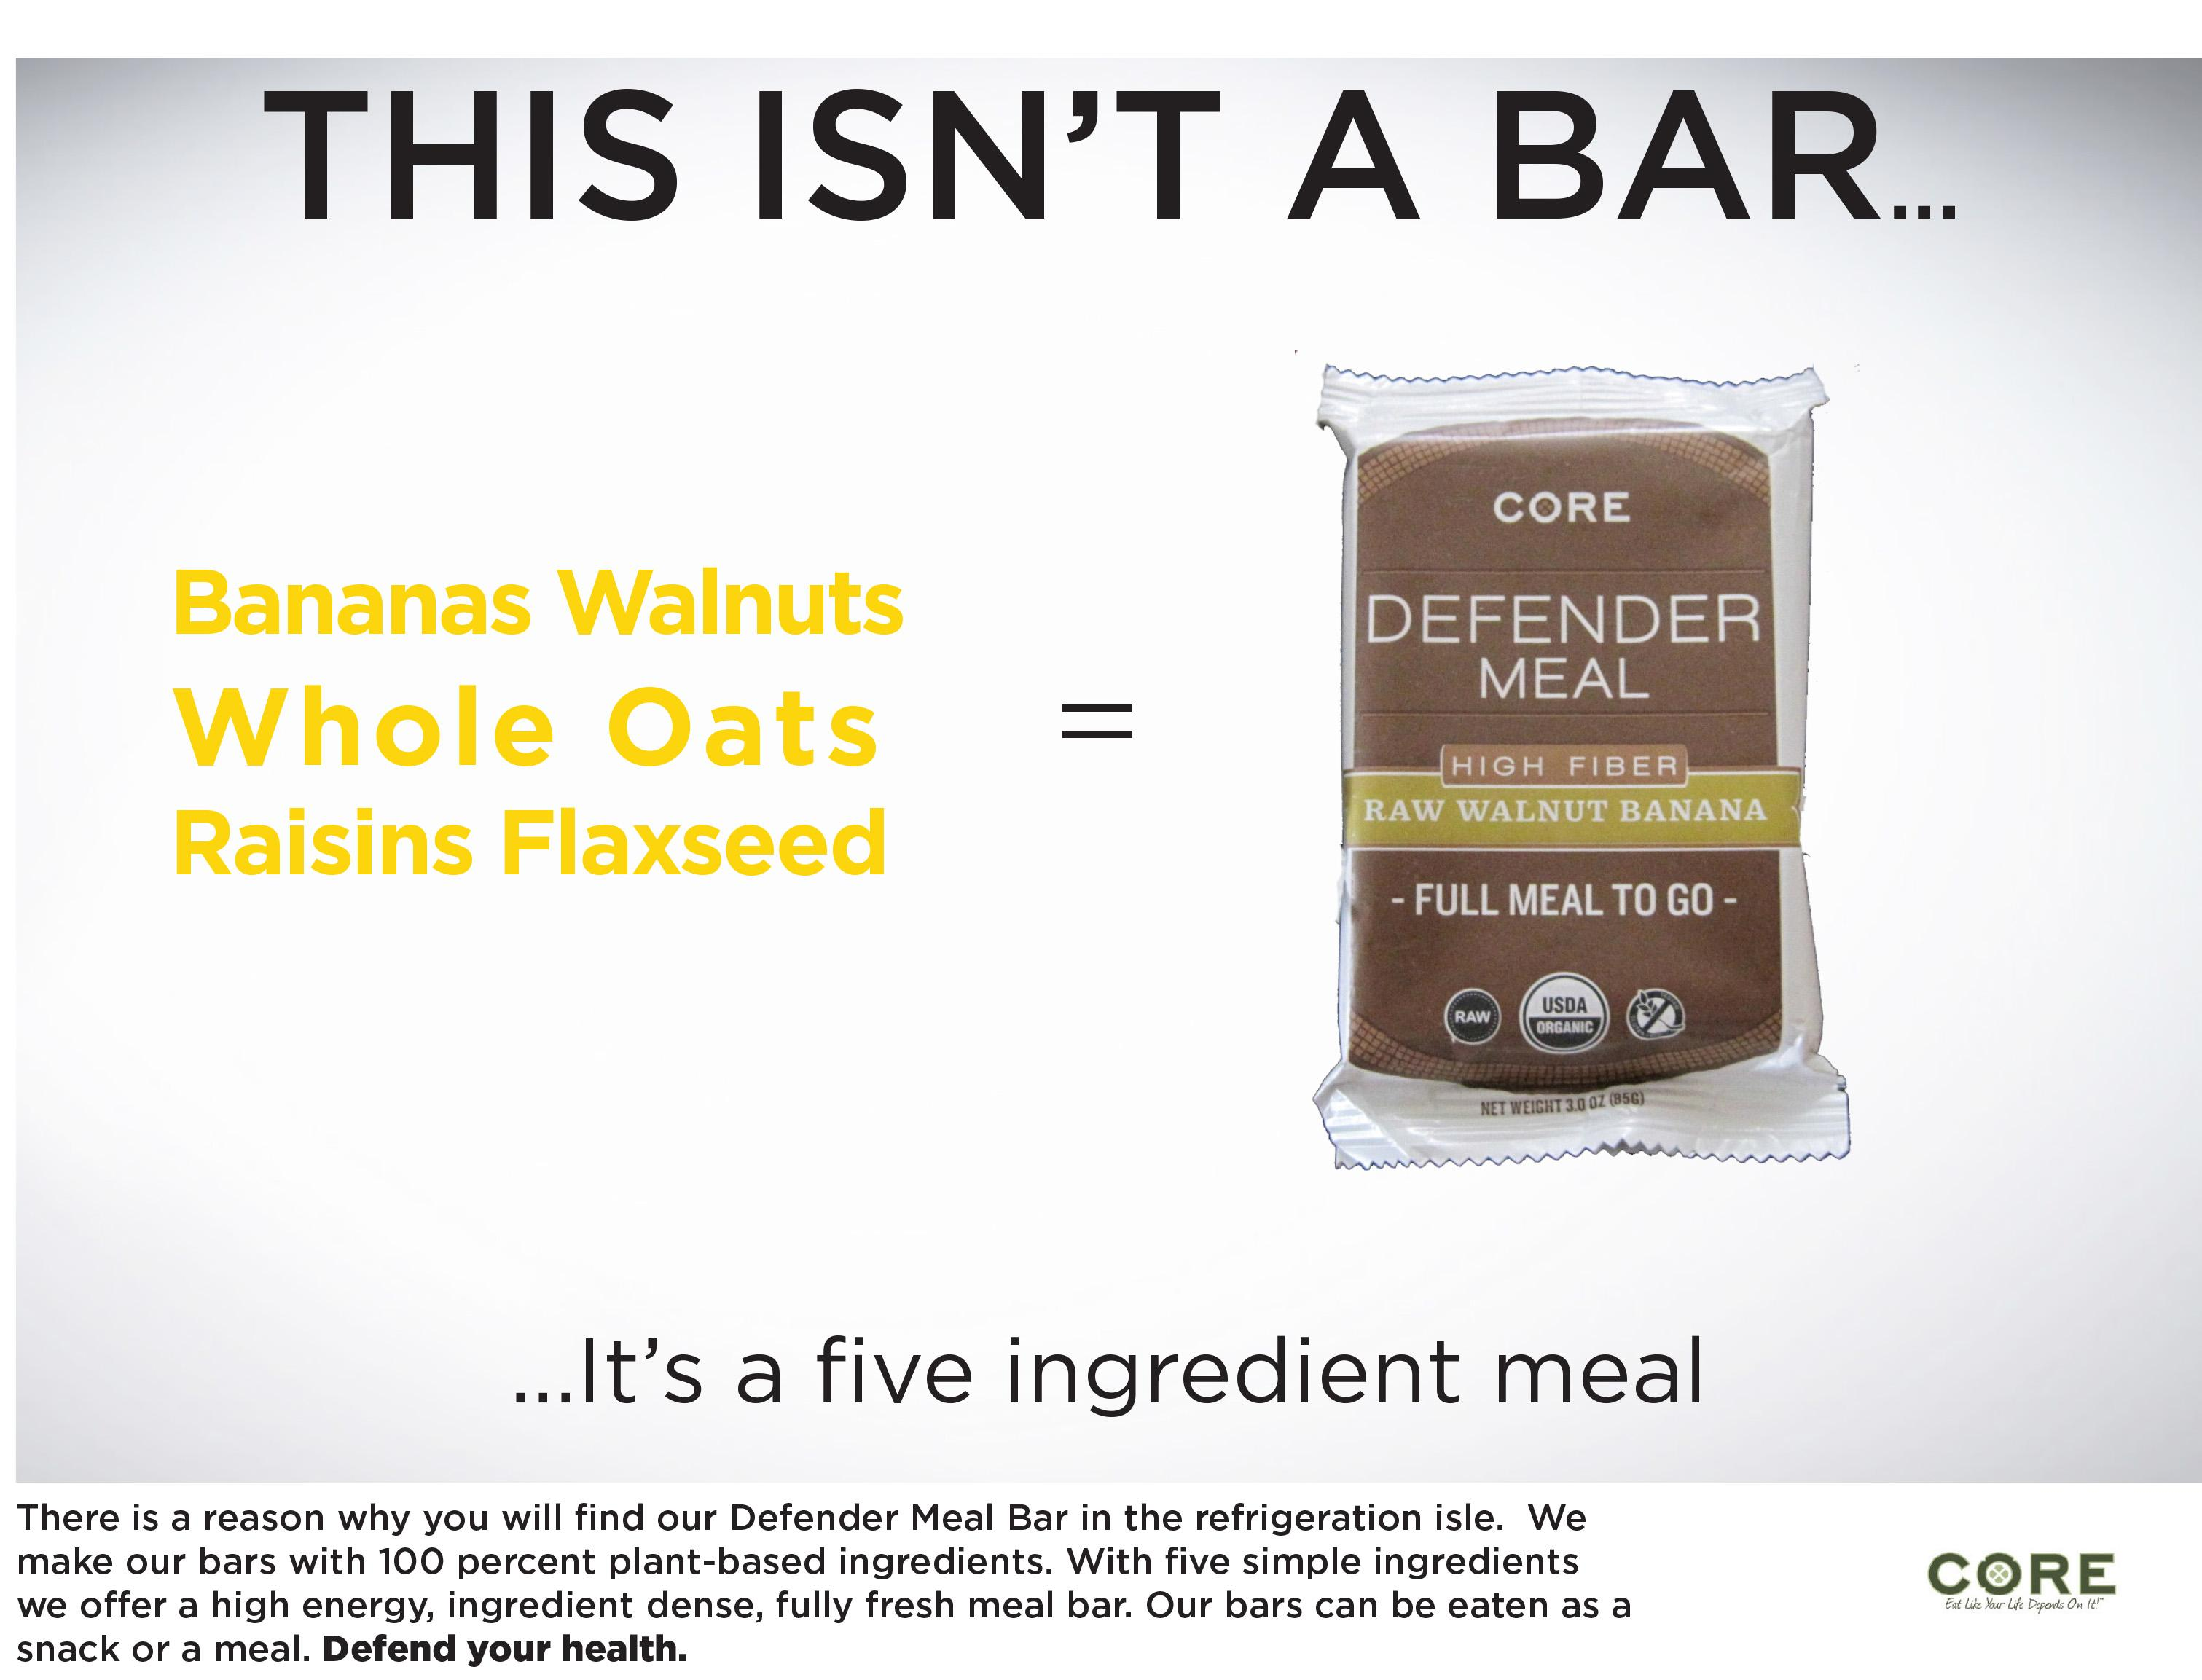 Defender Meal Bars - image 2 - student project